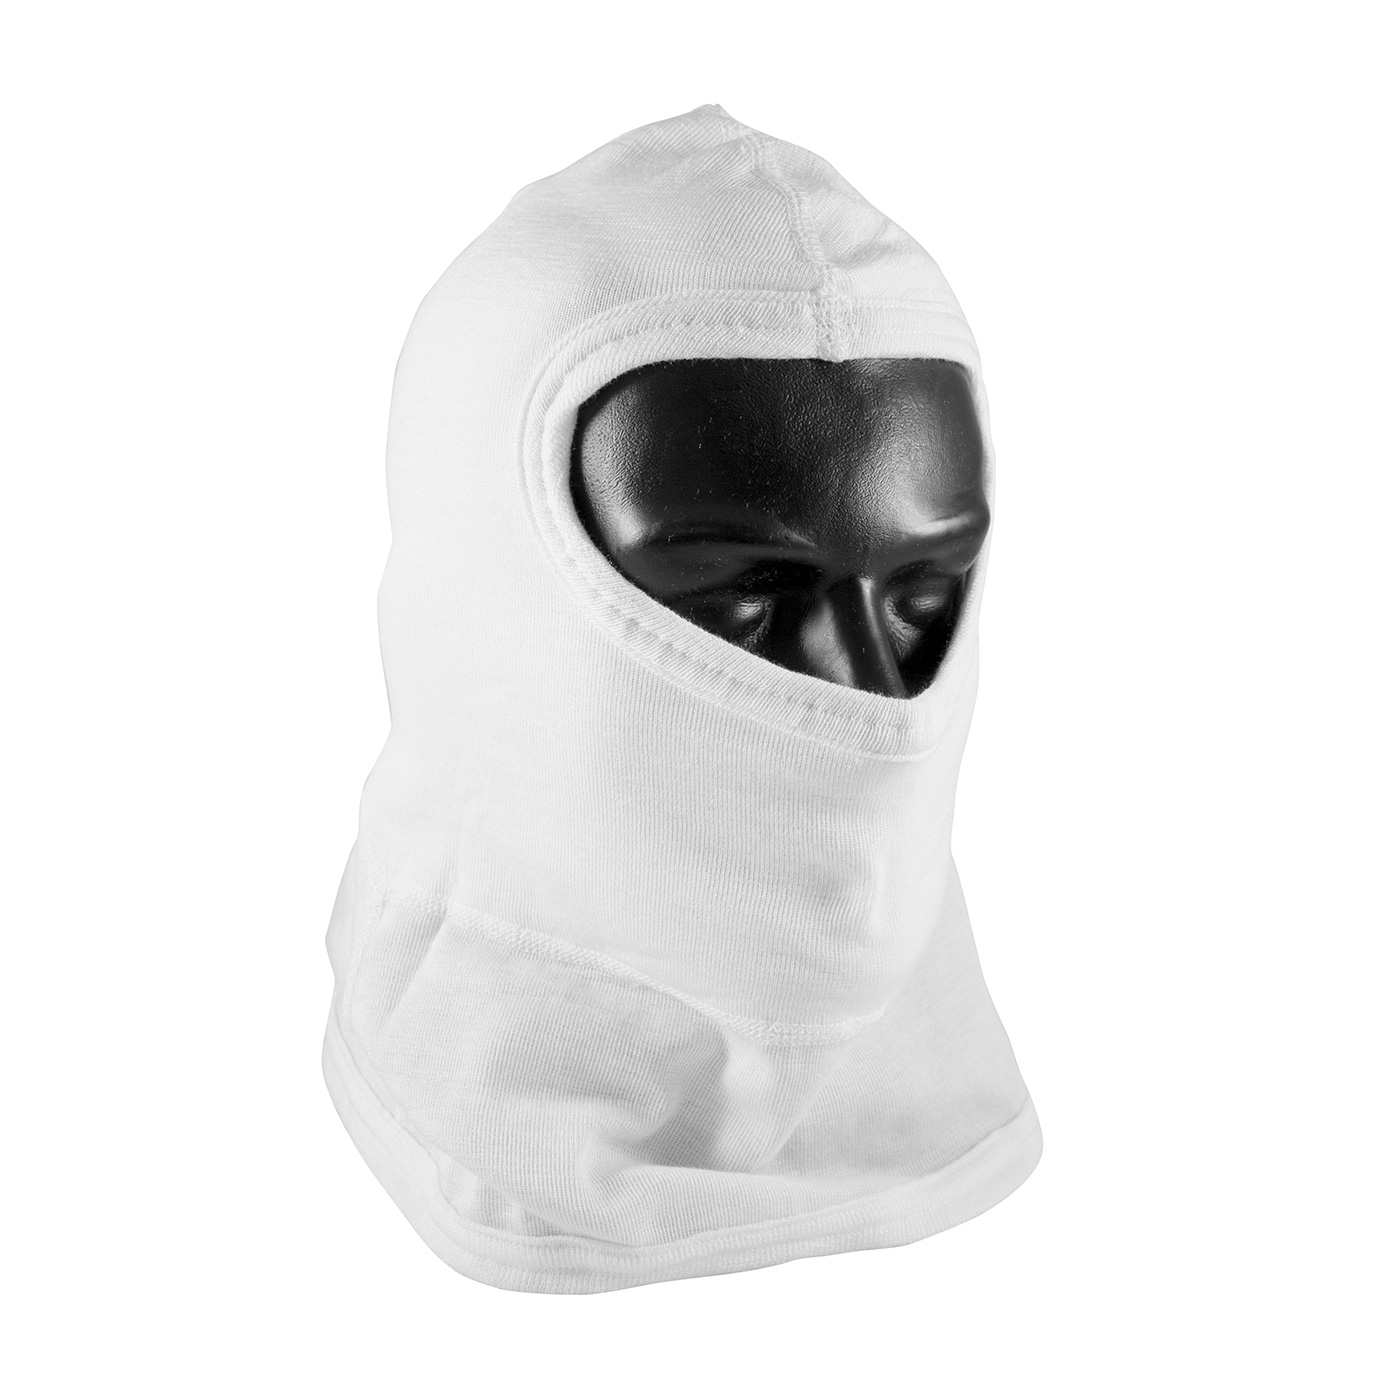 202-112 PIP® Double-Layer White Nomex® Balaclava with bib - Full Face